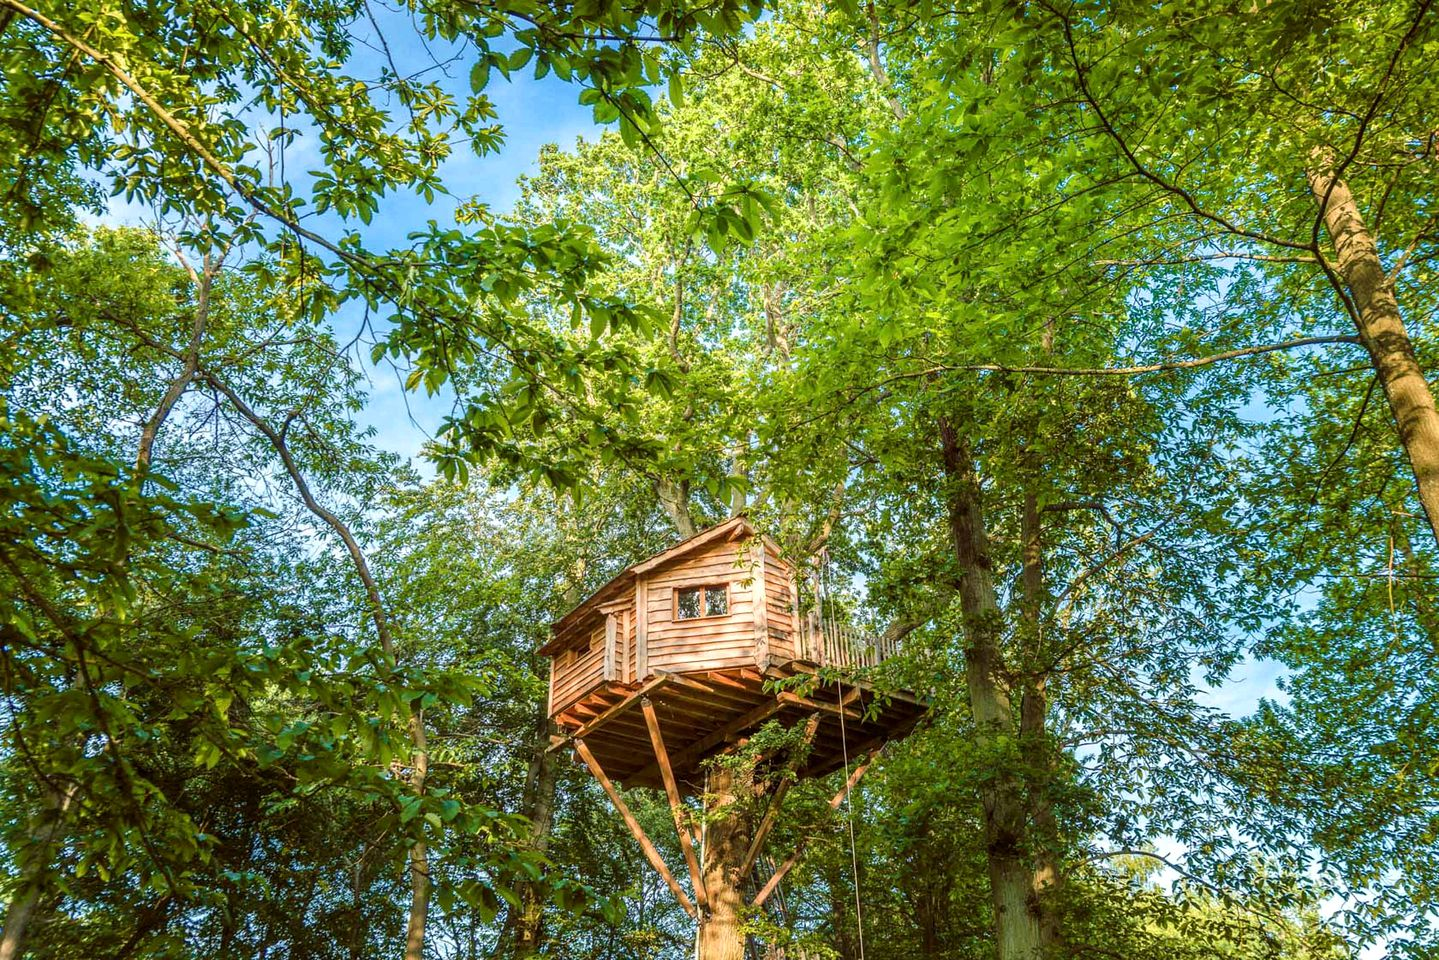 Tree Houses (Oise, Hauts-de-France, France)